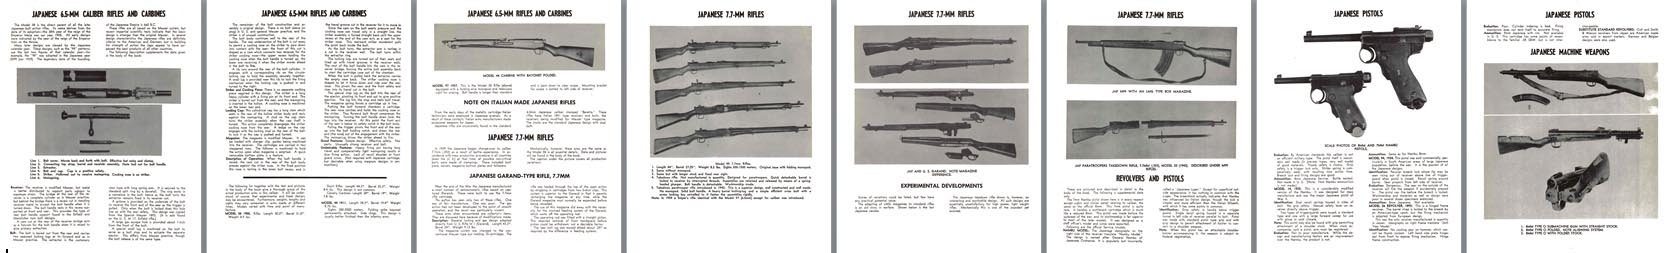 Japanese WWII Rifles, Pistols & MGs Description and Operation